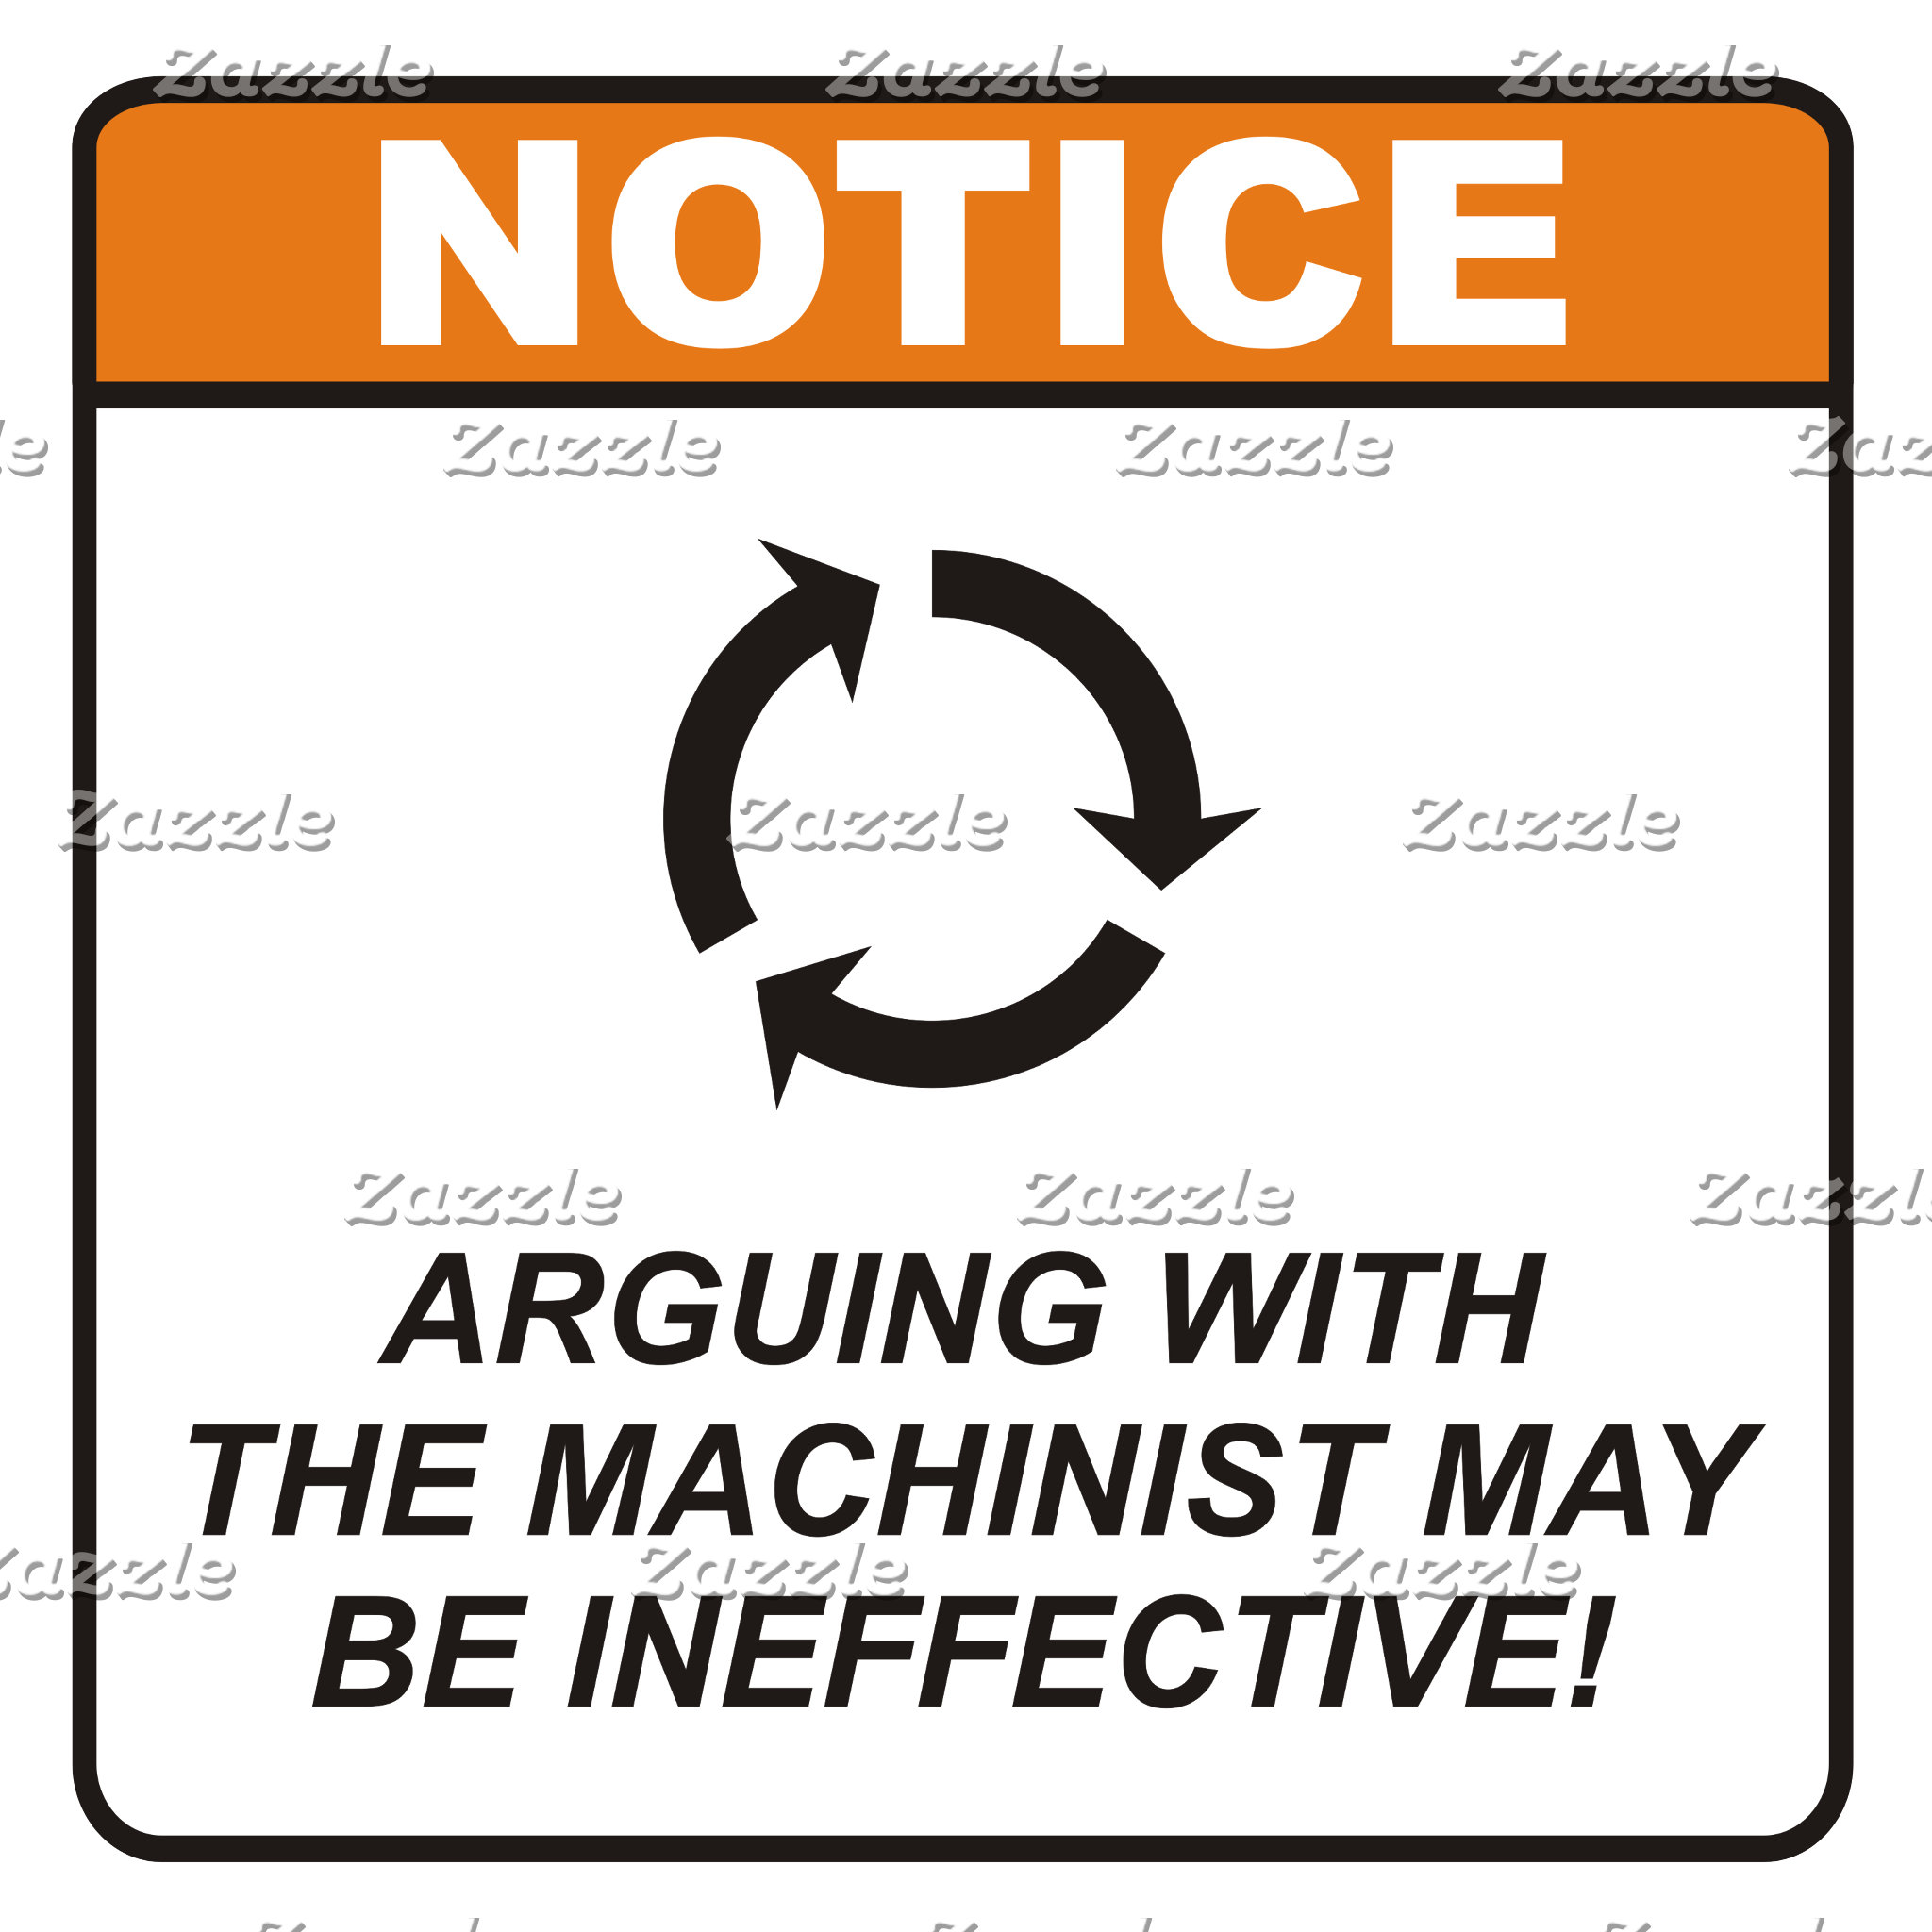 Arguing with the Machinist